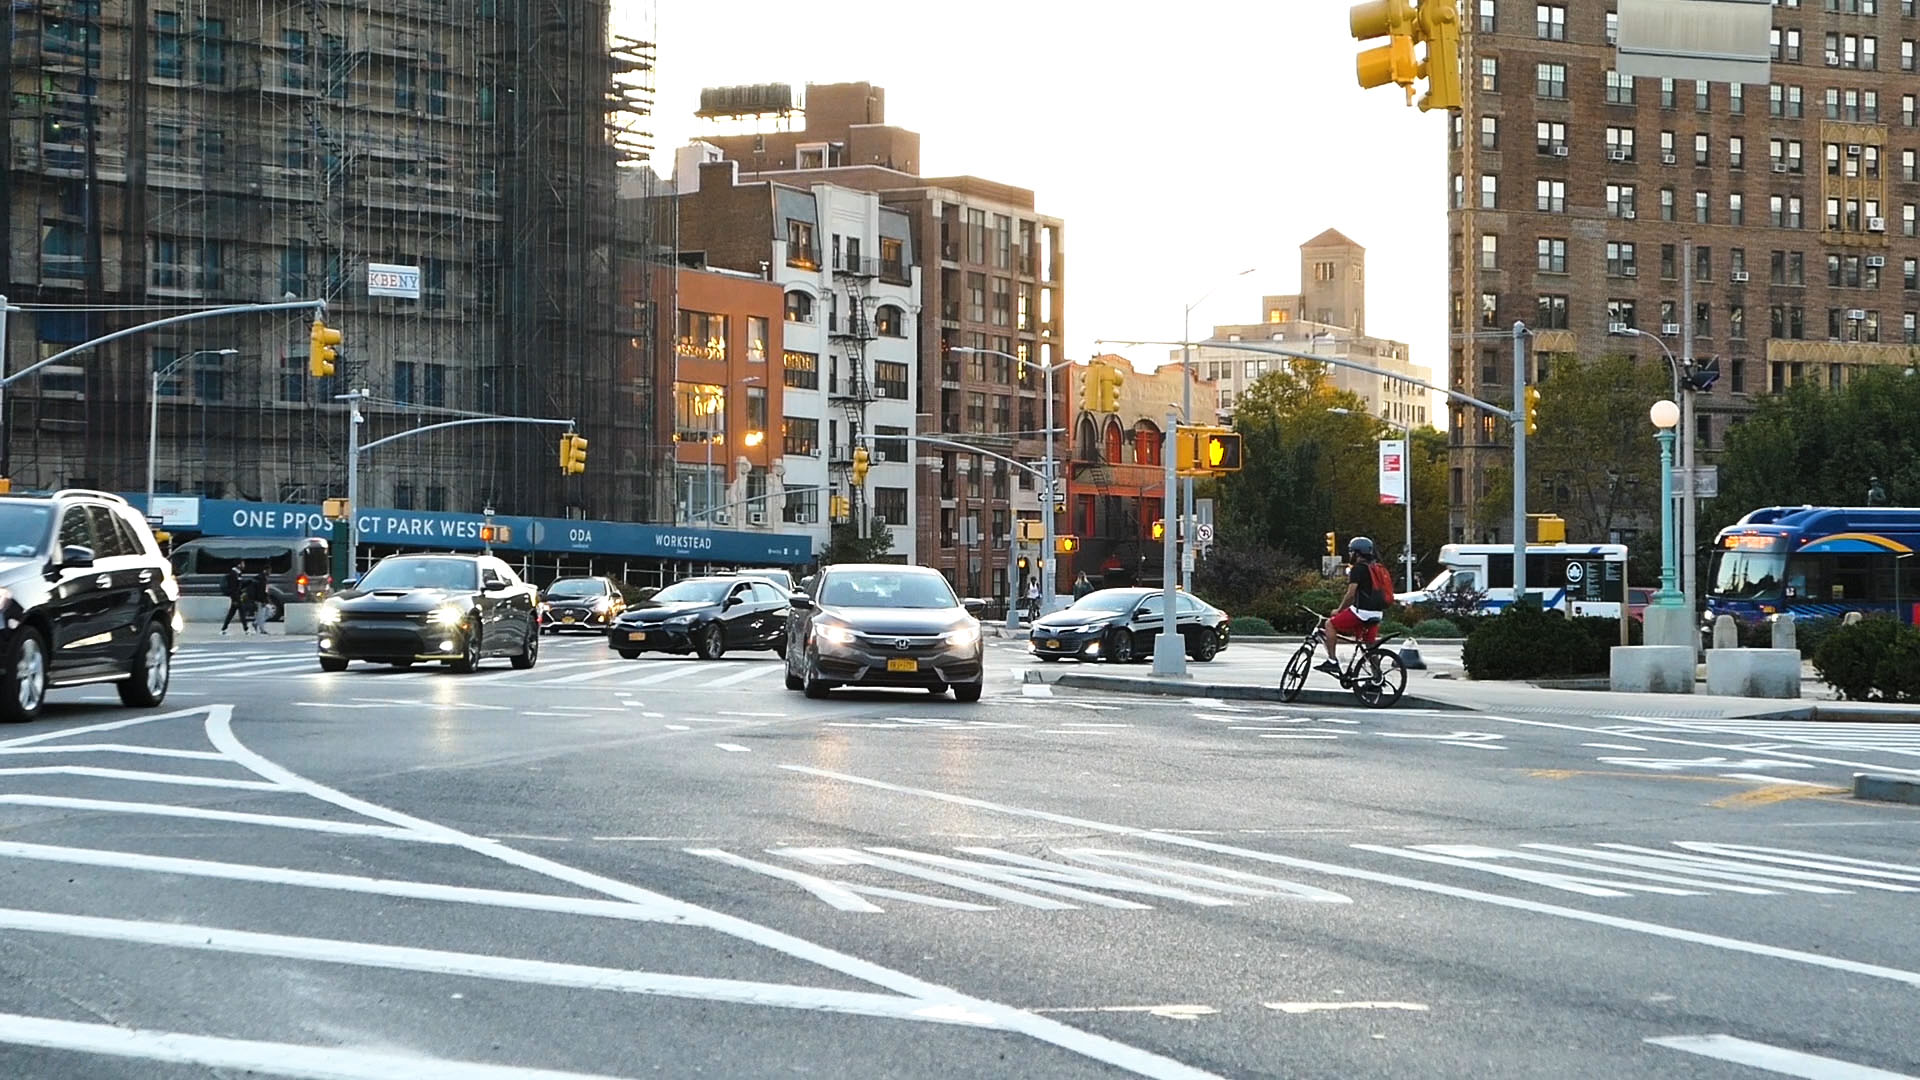 Cars and Bicycles on Brooklyn Street